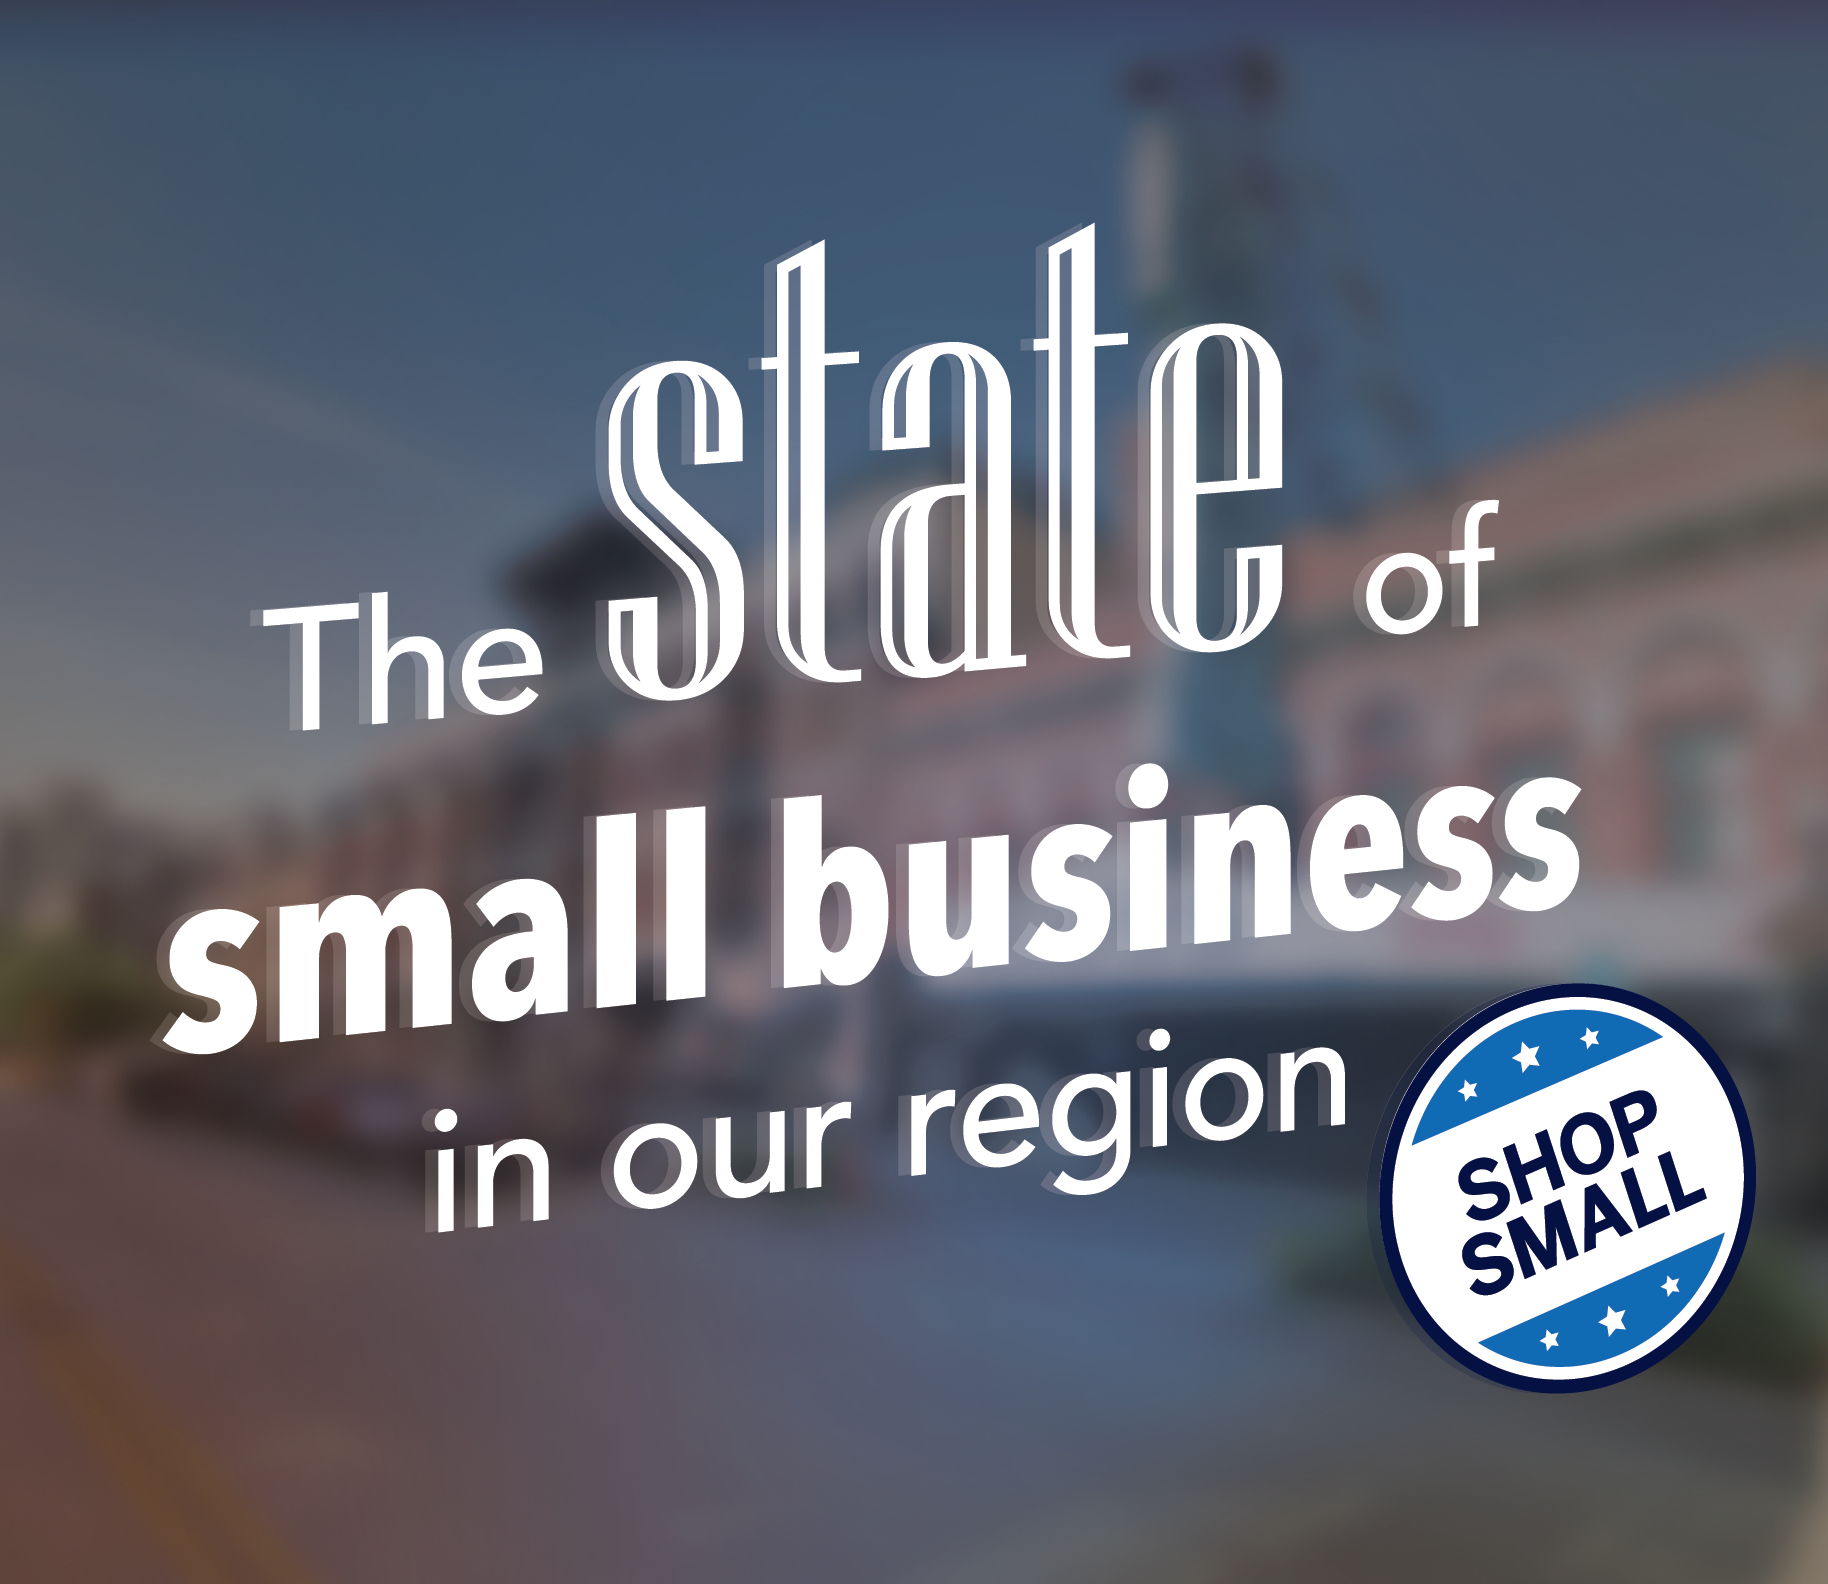 Buy local, shop small, choose chamber & the state of small business in our region